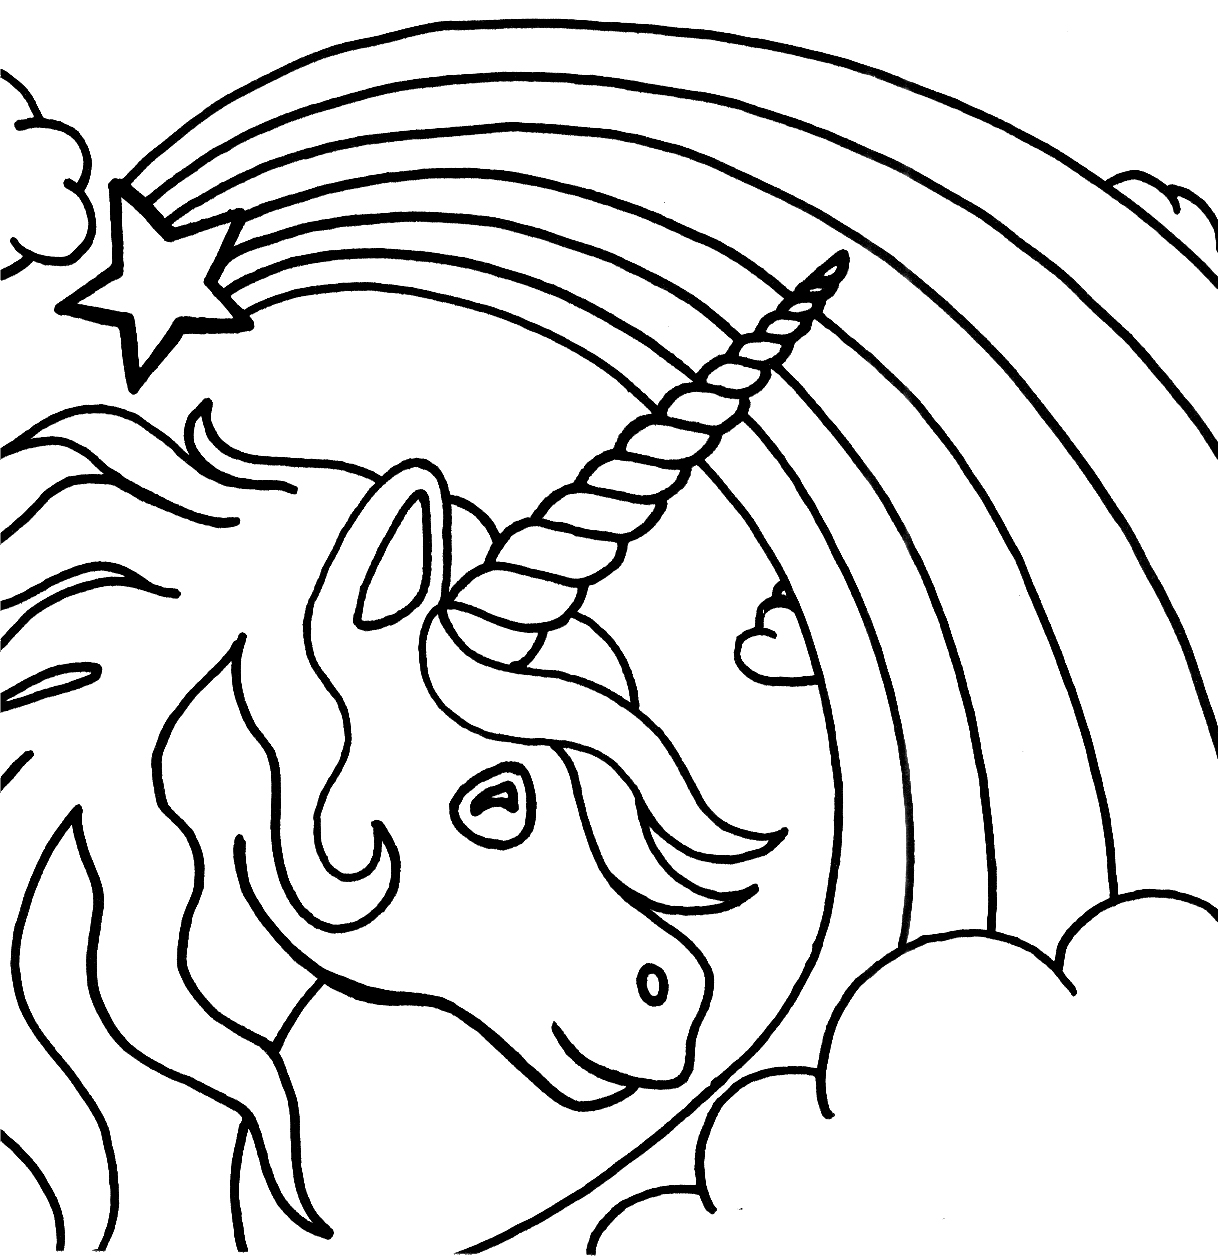 unicorn coloring pages for kids - Coling Pages